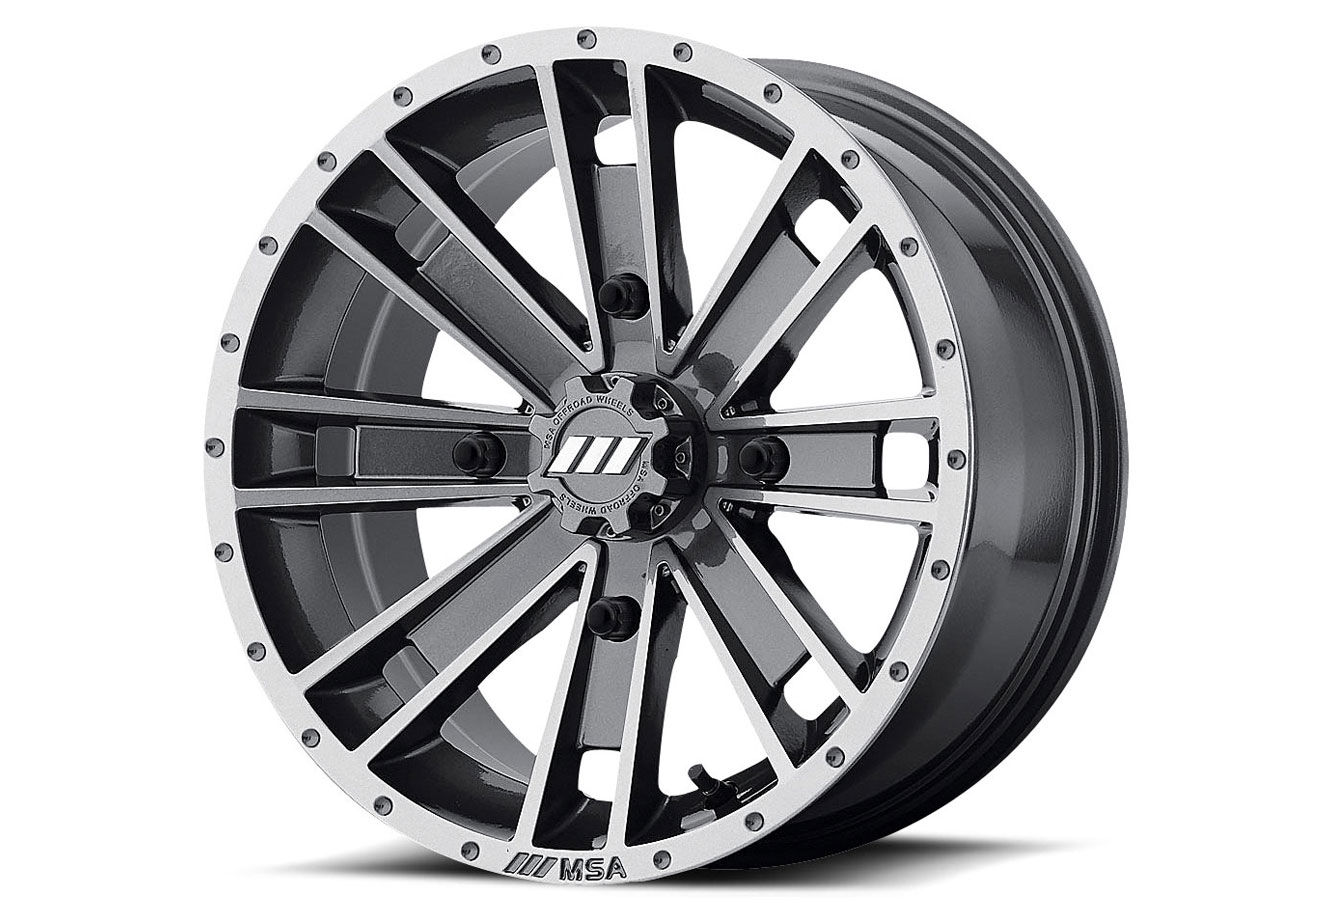 MSA M28 AMBUSH WHEELS